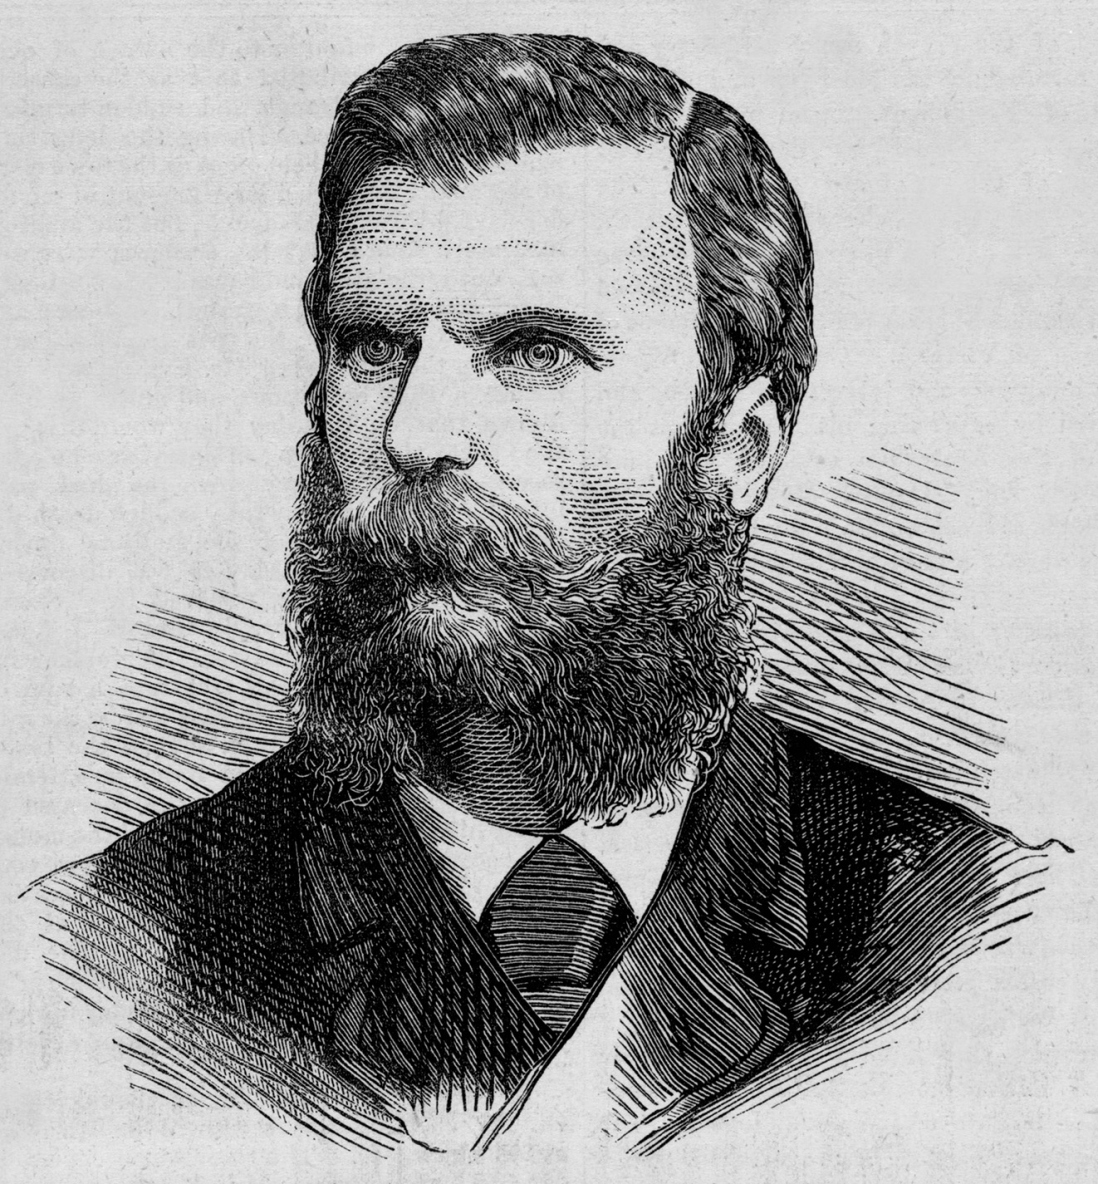 Illustration of bearded man.